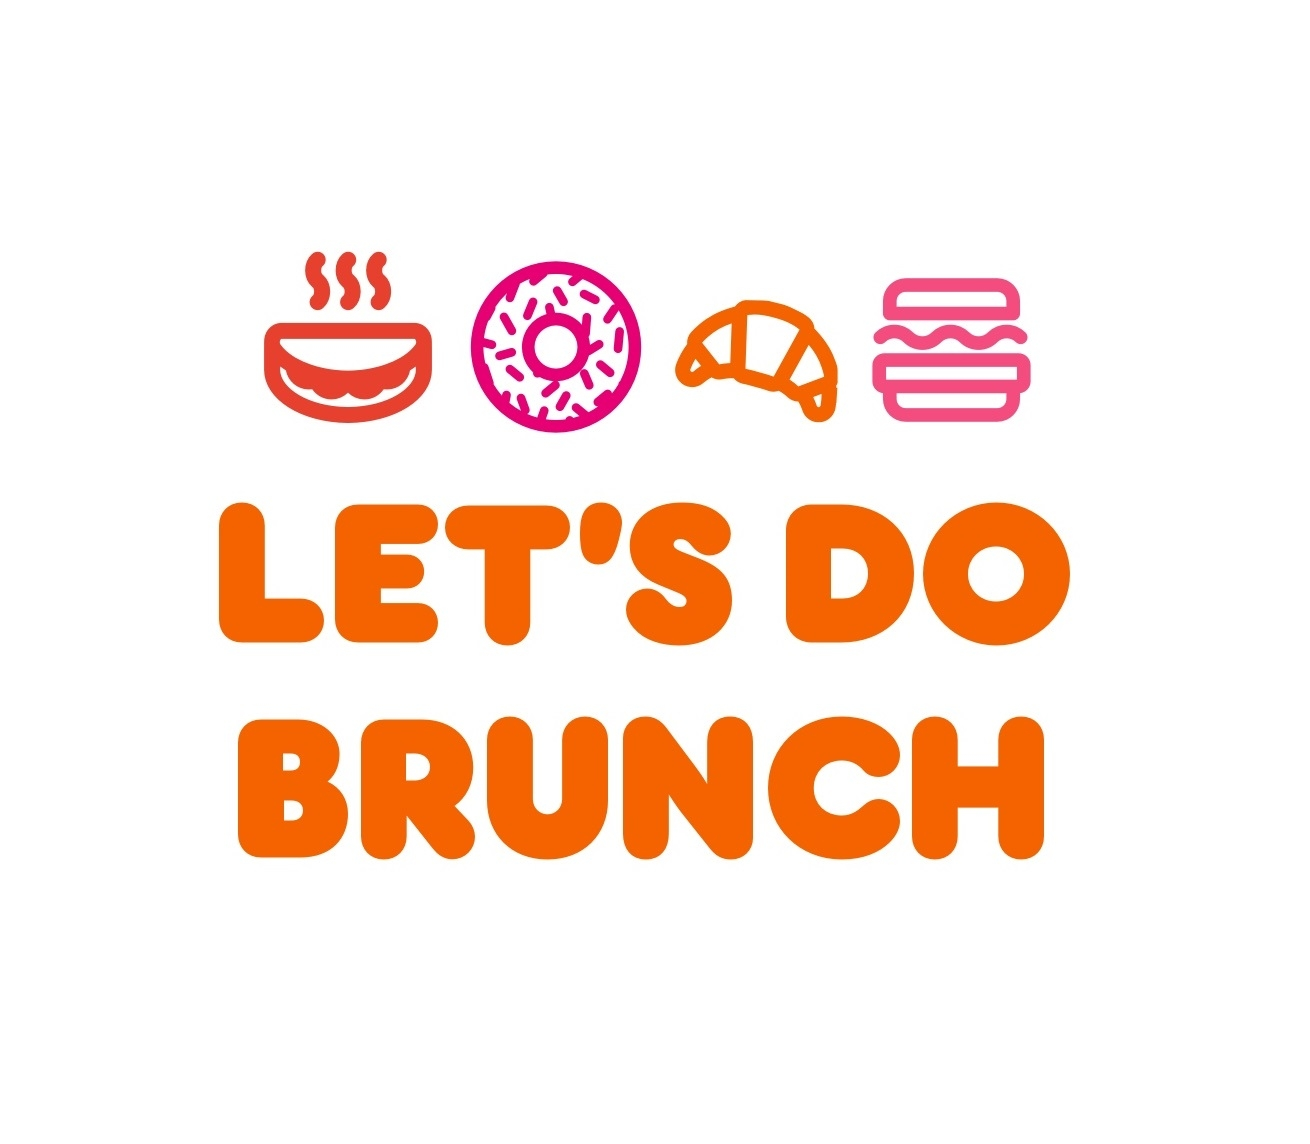 Enjoy a Sweet Brunch Offer from Dunkin' This Weekend